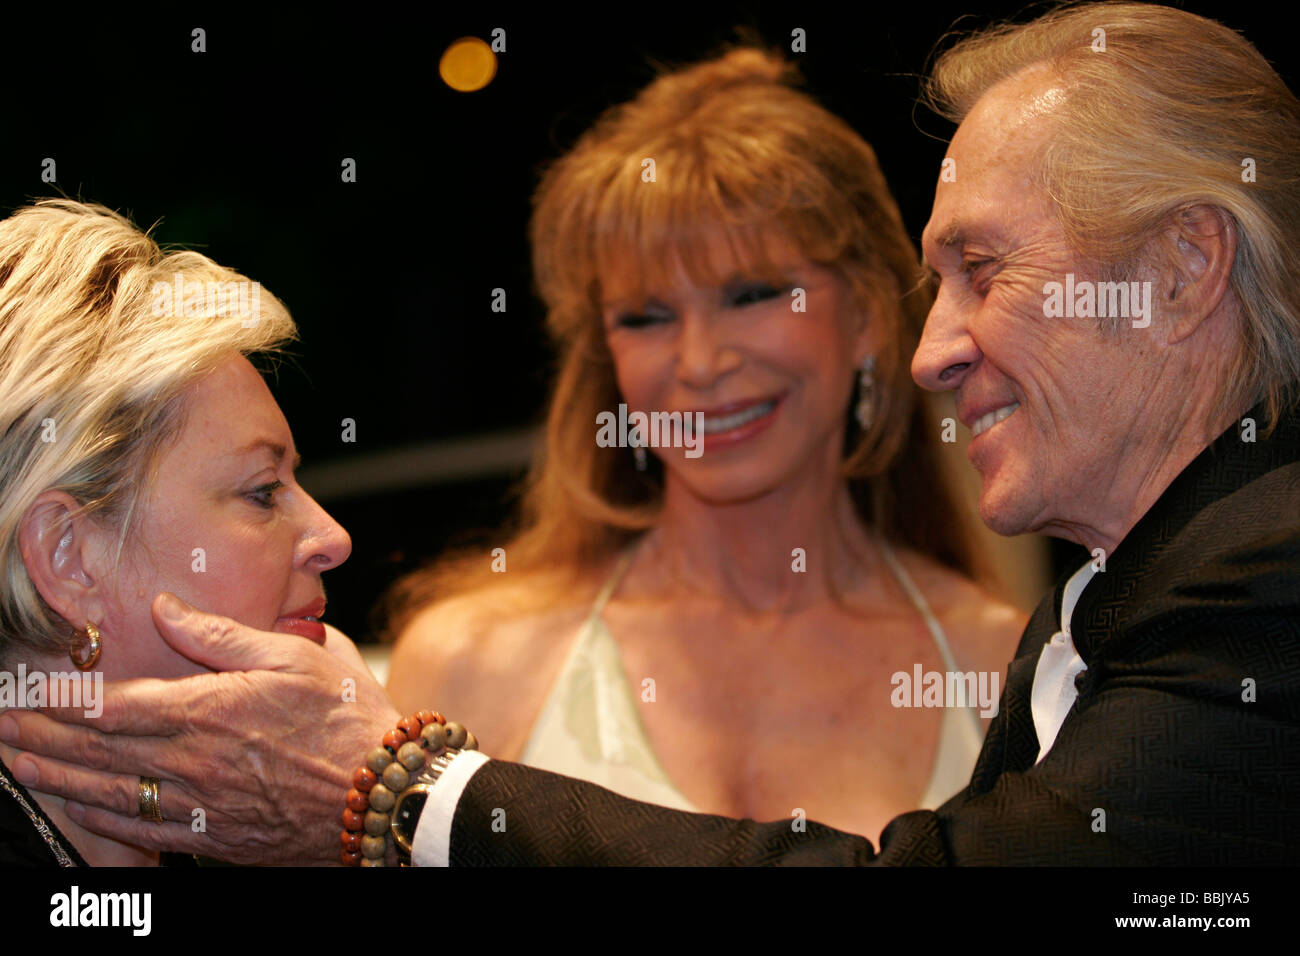 Hollywood star kung fu actor David Carradine, fellow Hollywood actress Ann Turkel +other actress in Almaty, Kazakhstan - Stock Image